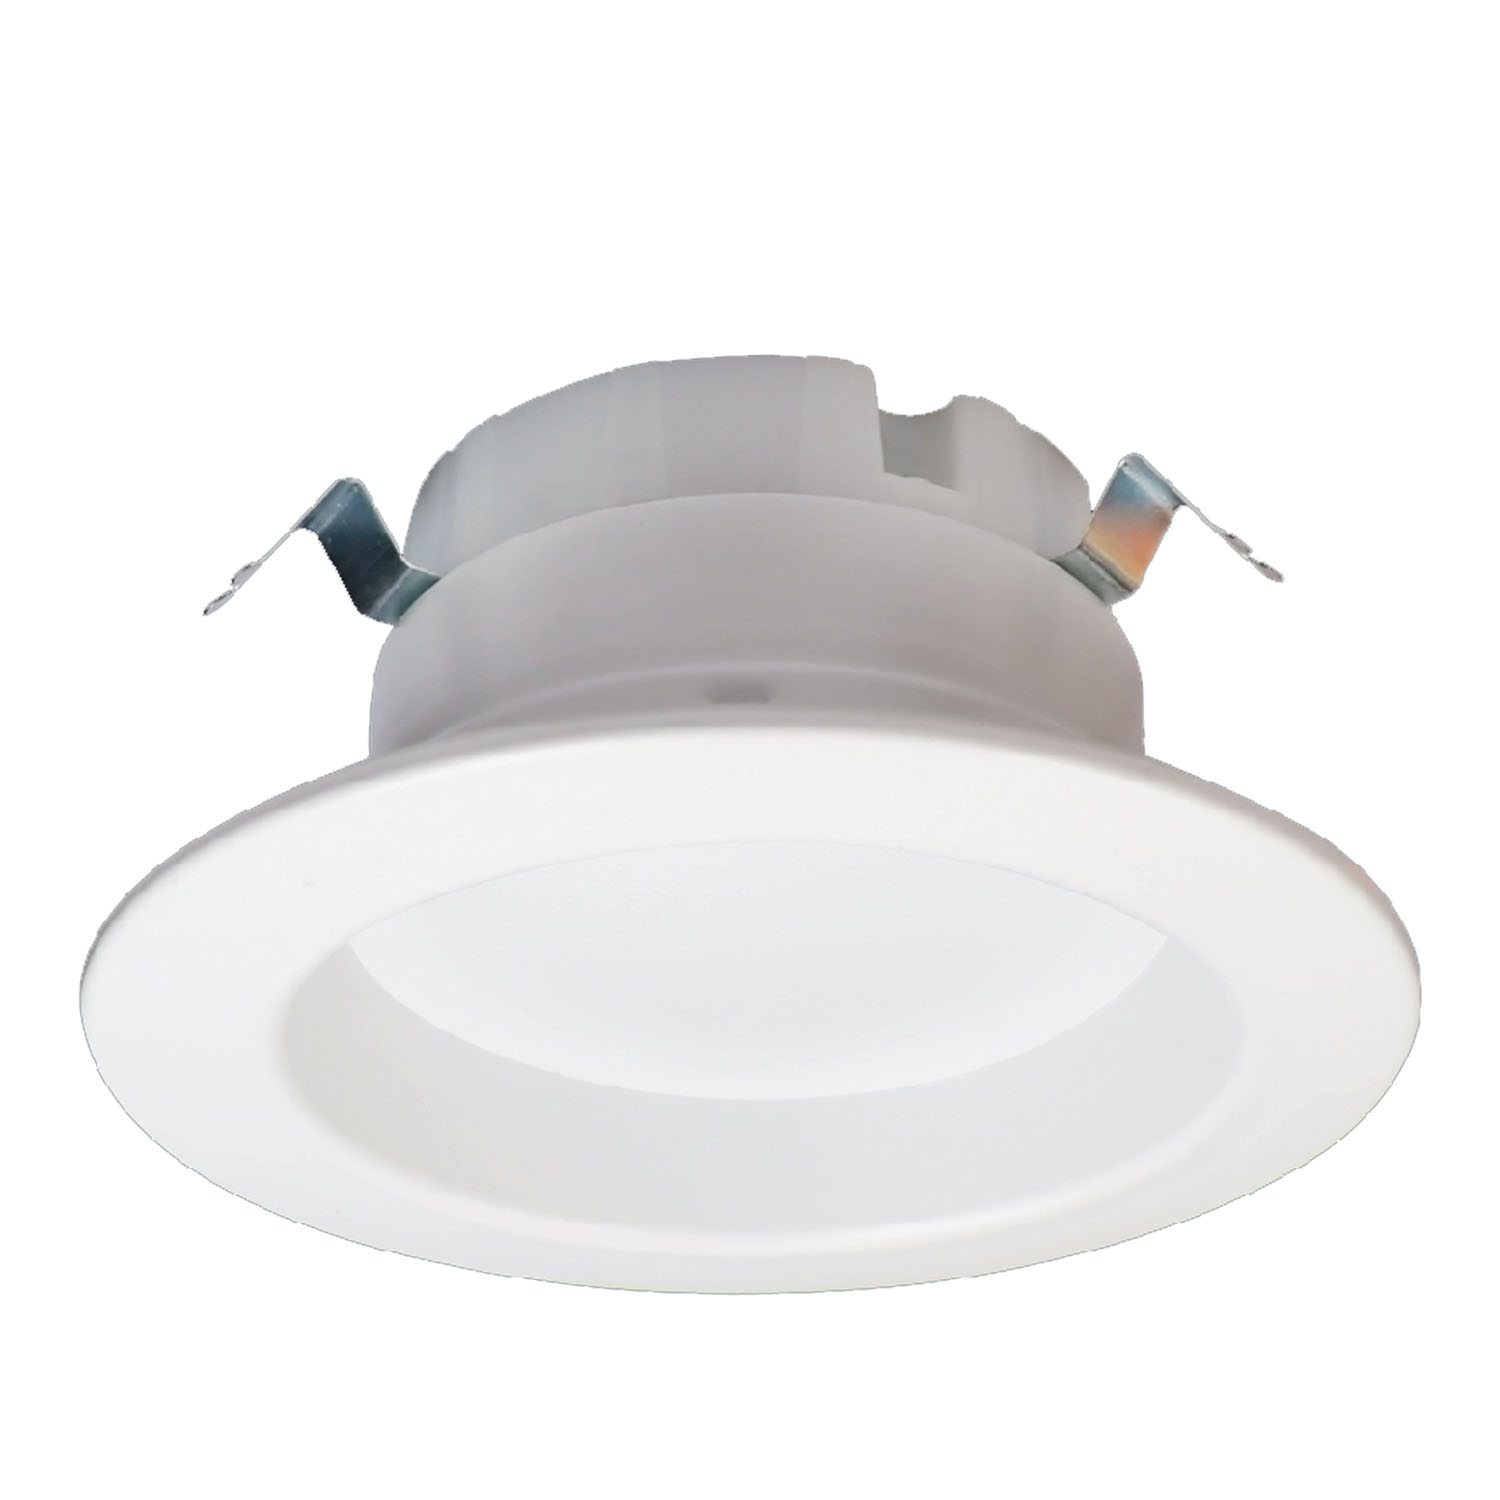 "DL4FR10/927/ECO/LED2 99633 4"" Retrofit Downlight, 10W, 2700K, Dimmable ProLED ECO Series II"